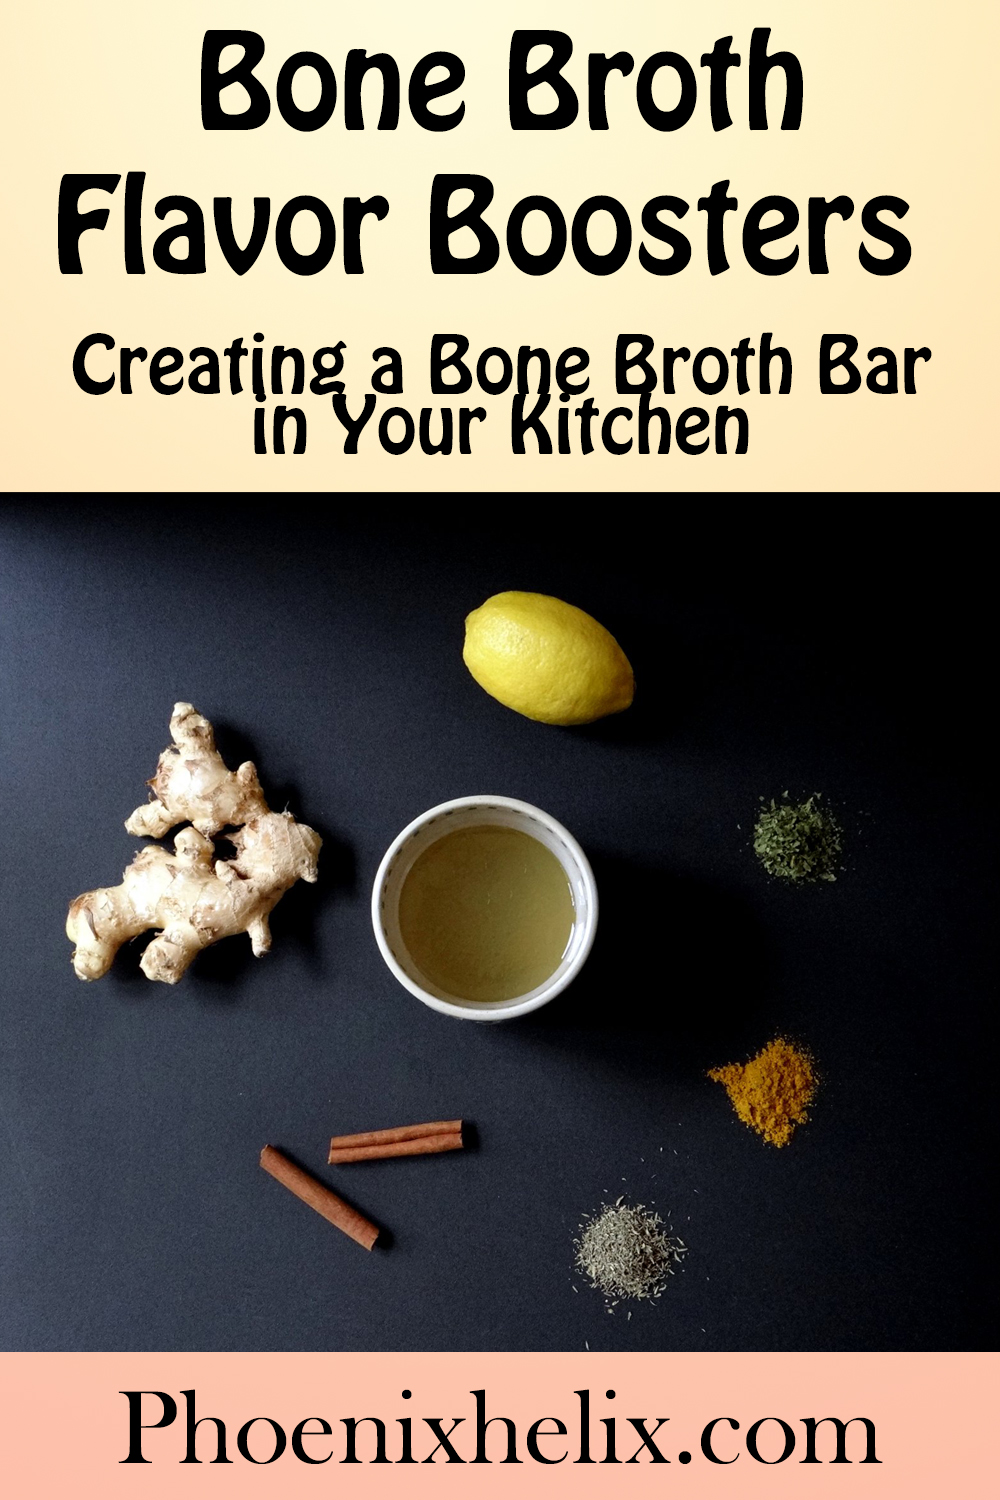 Bone Broth Flavor Boosters - Creating a Bone Broth Bar in Your Kitchen | Phoenix Helix